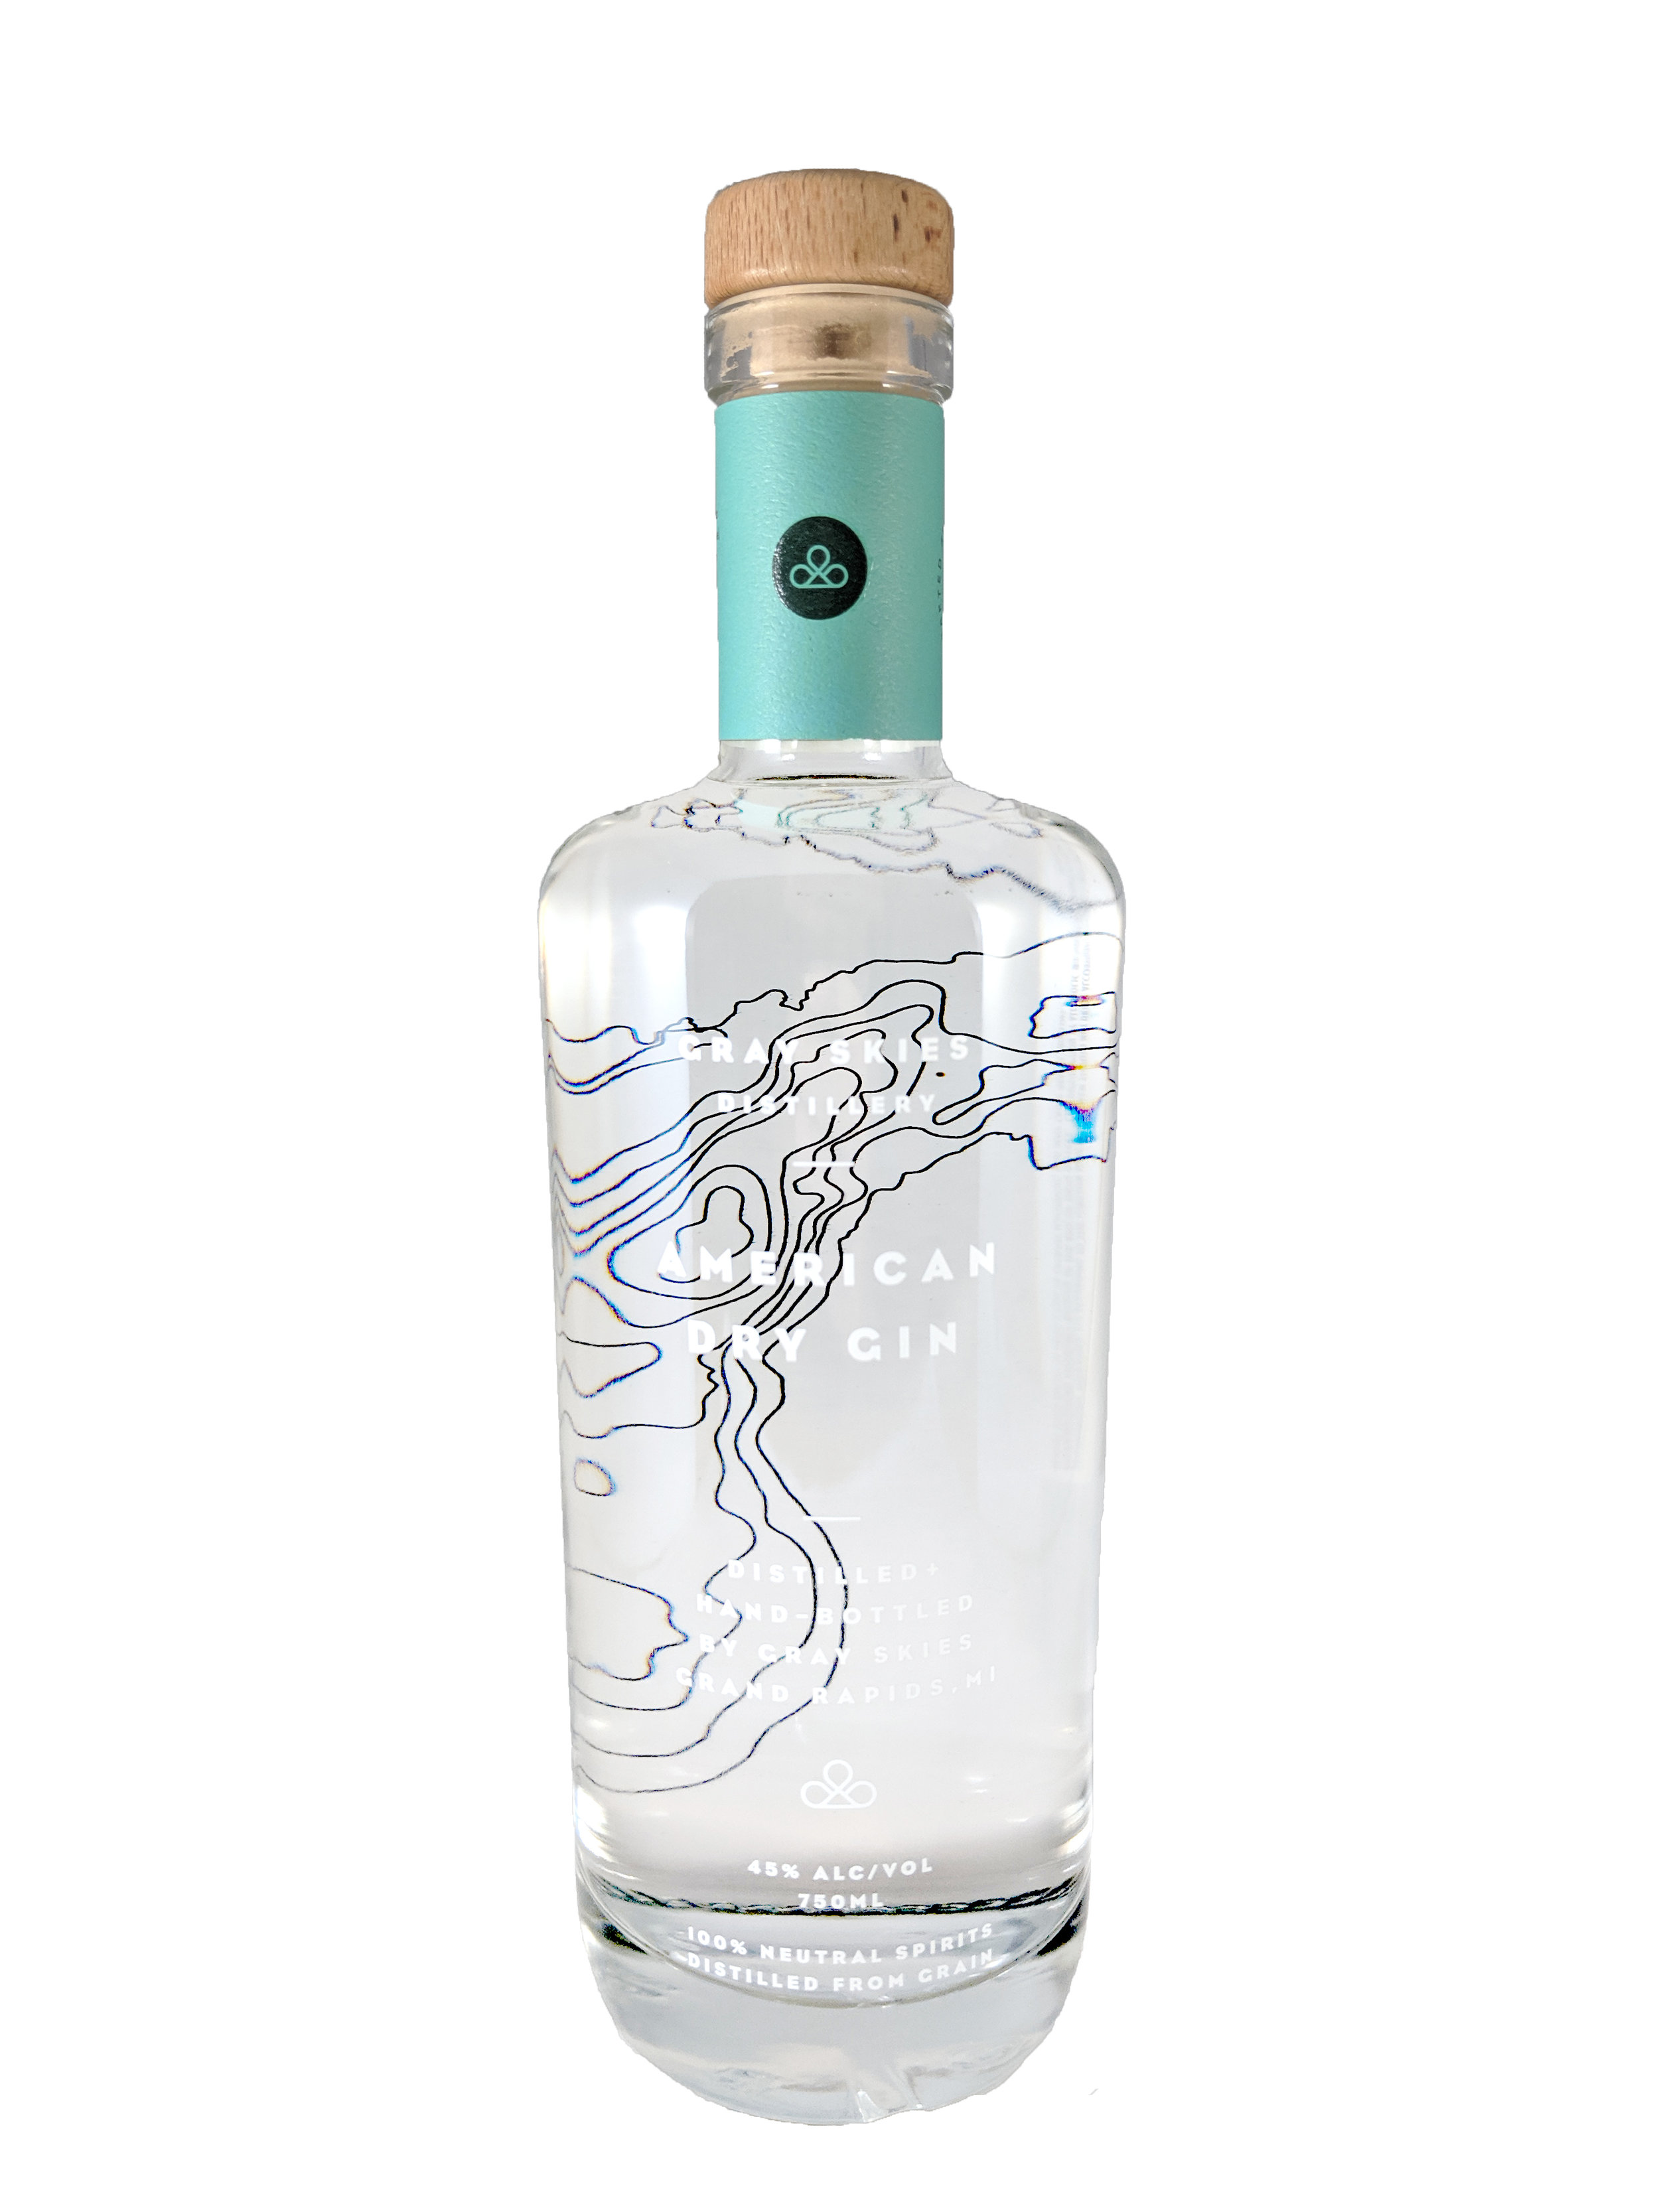 AMERICAN DRY GIN - Handcrafted in small batches American Dry Gin uses kaffir lime leaves to complement citrus peel, juniper and coriander creating a vibrant citrus fragrance and intriguing flavor.  Black pepper and other spices mingle with and balance the citrus to deliver a dry peppery finish.